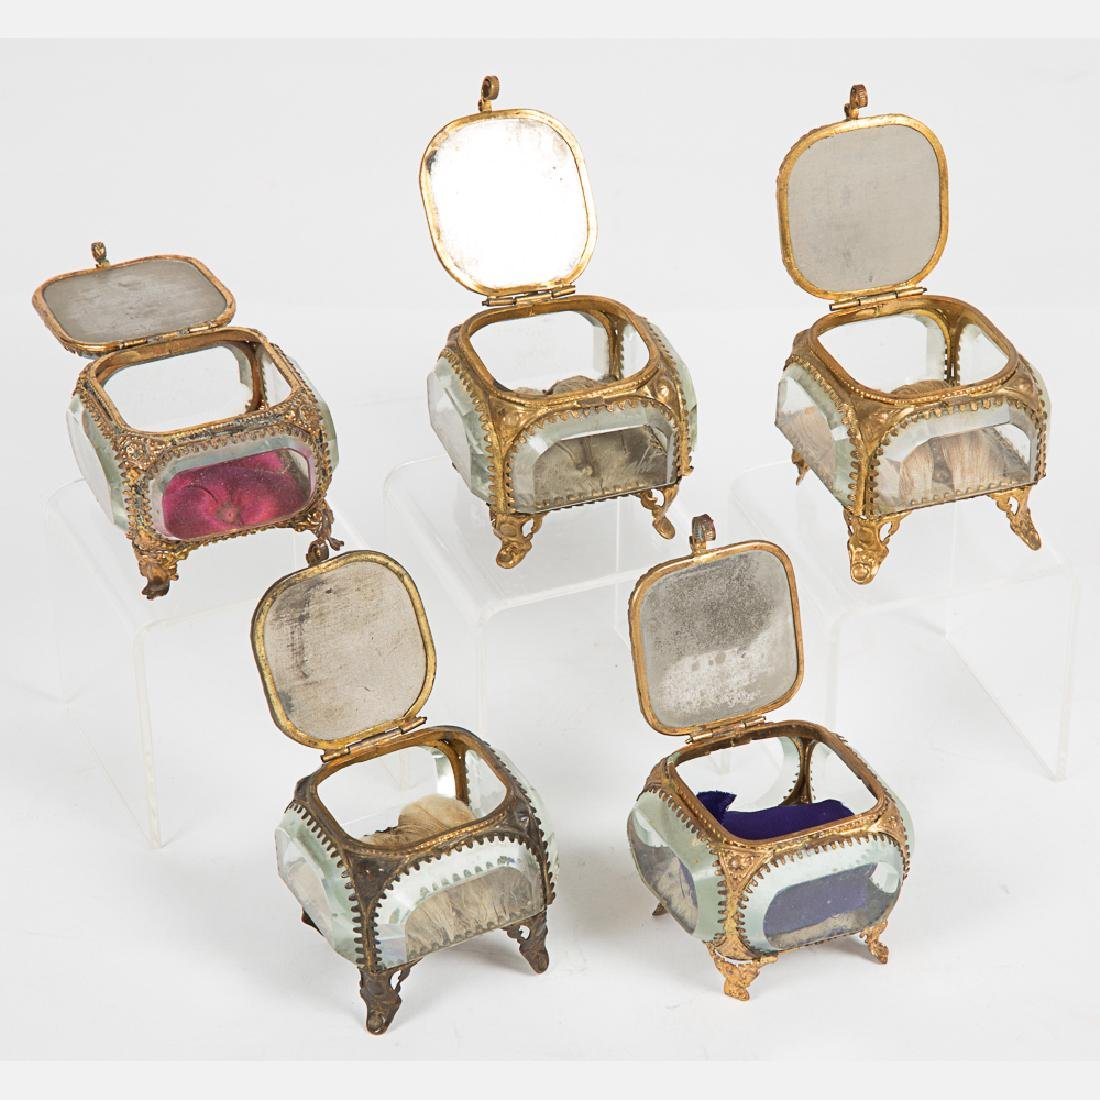 A Group of Five Glass and Brass Jewelry Boxes from the - 6